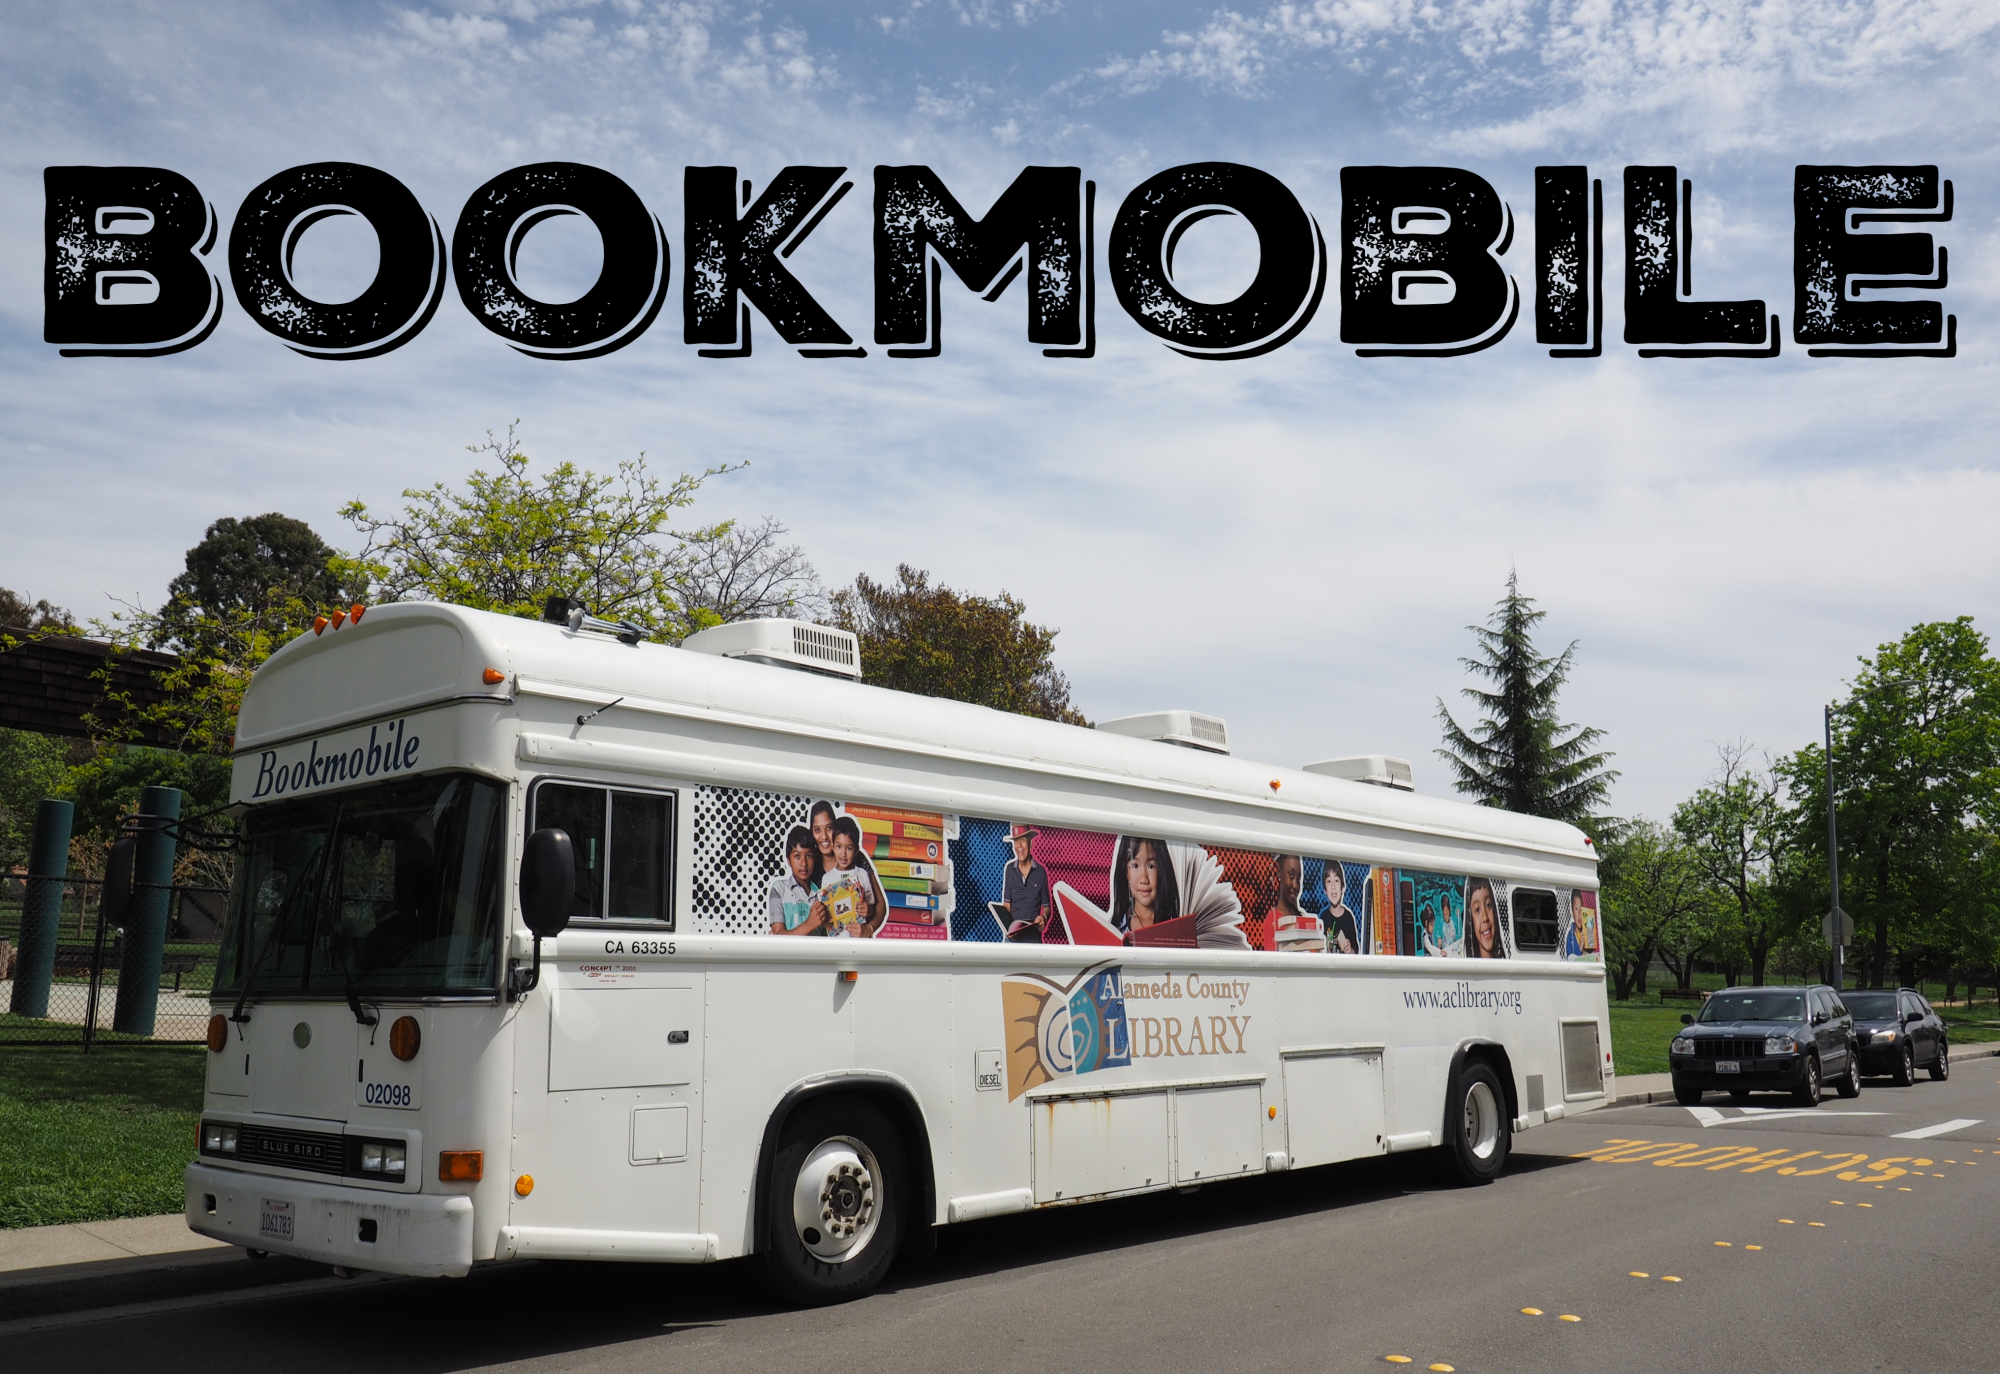 Ardenwood School - bookmobile stop